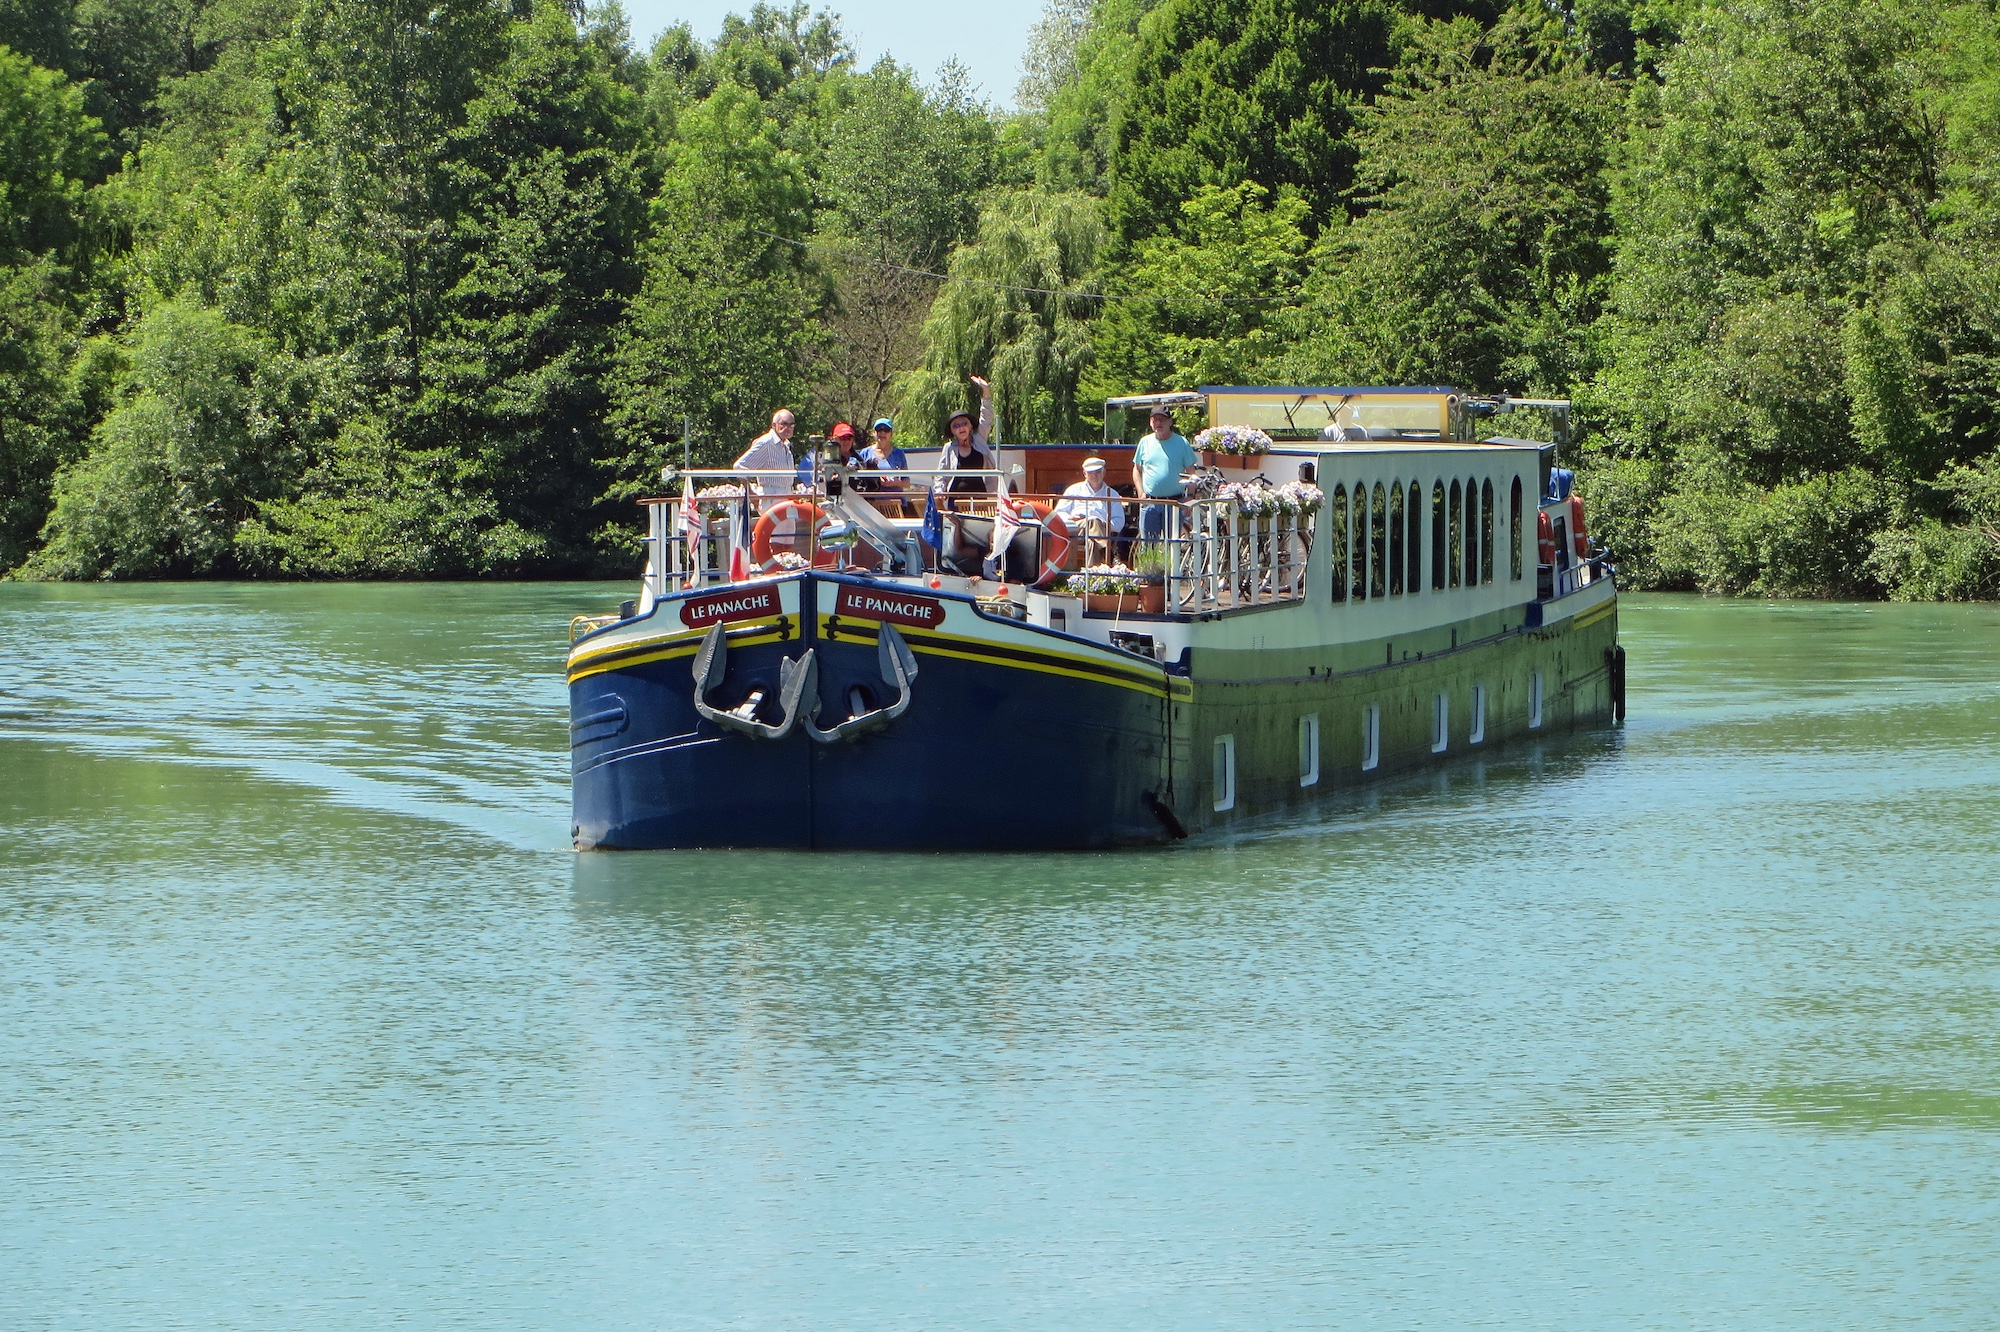 Spa Chalons En Champagne panache hotel barge champagne | endless beginnings